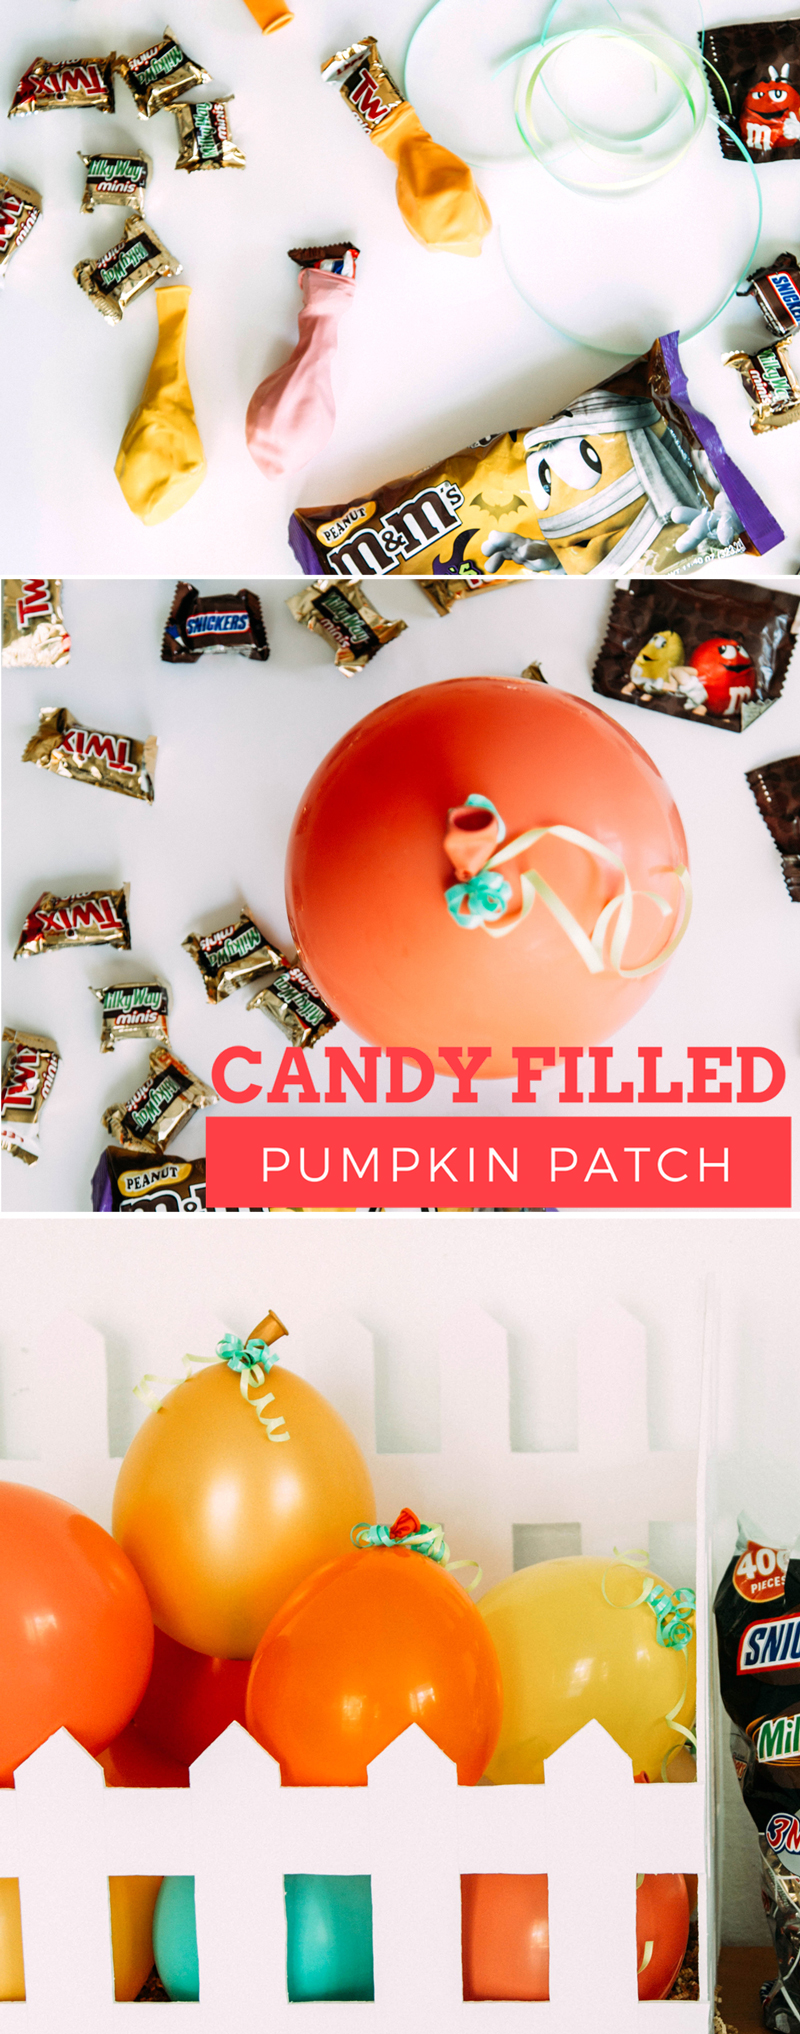 Candy filled pumpkin patch of balloons